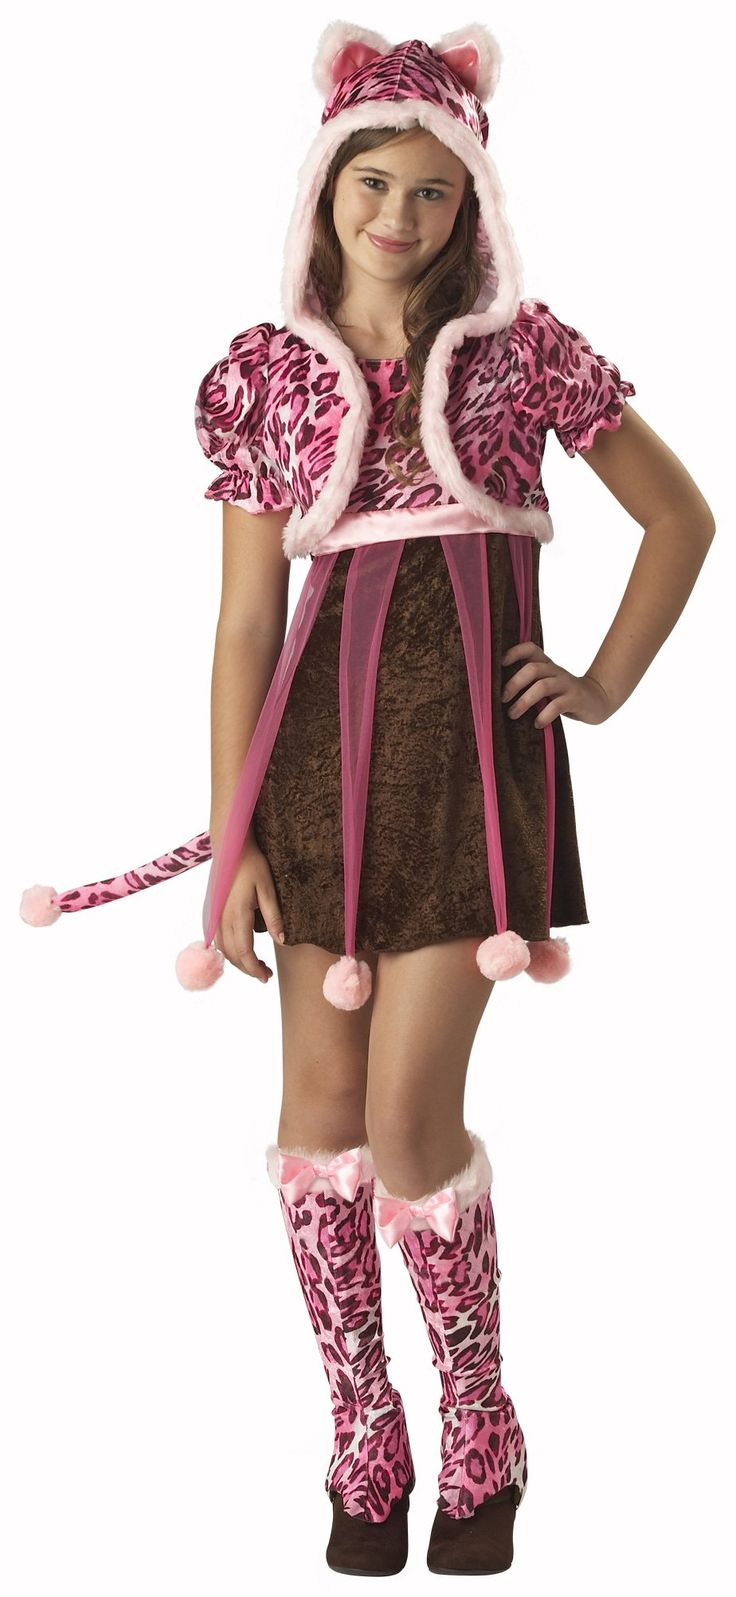 Awesome Costumes Kutie Kitten Tween Costume just added.